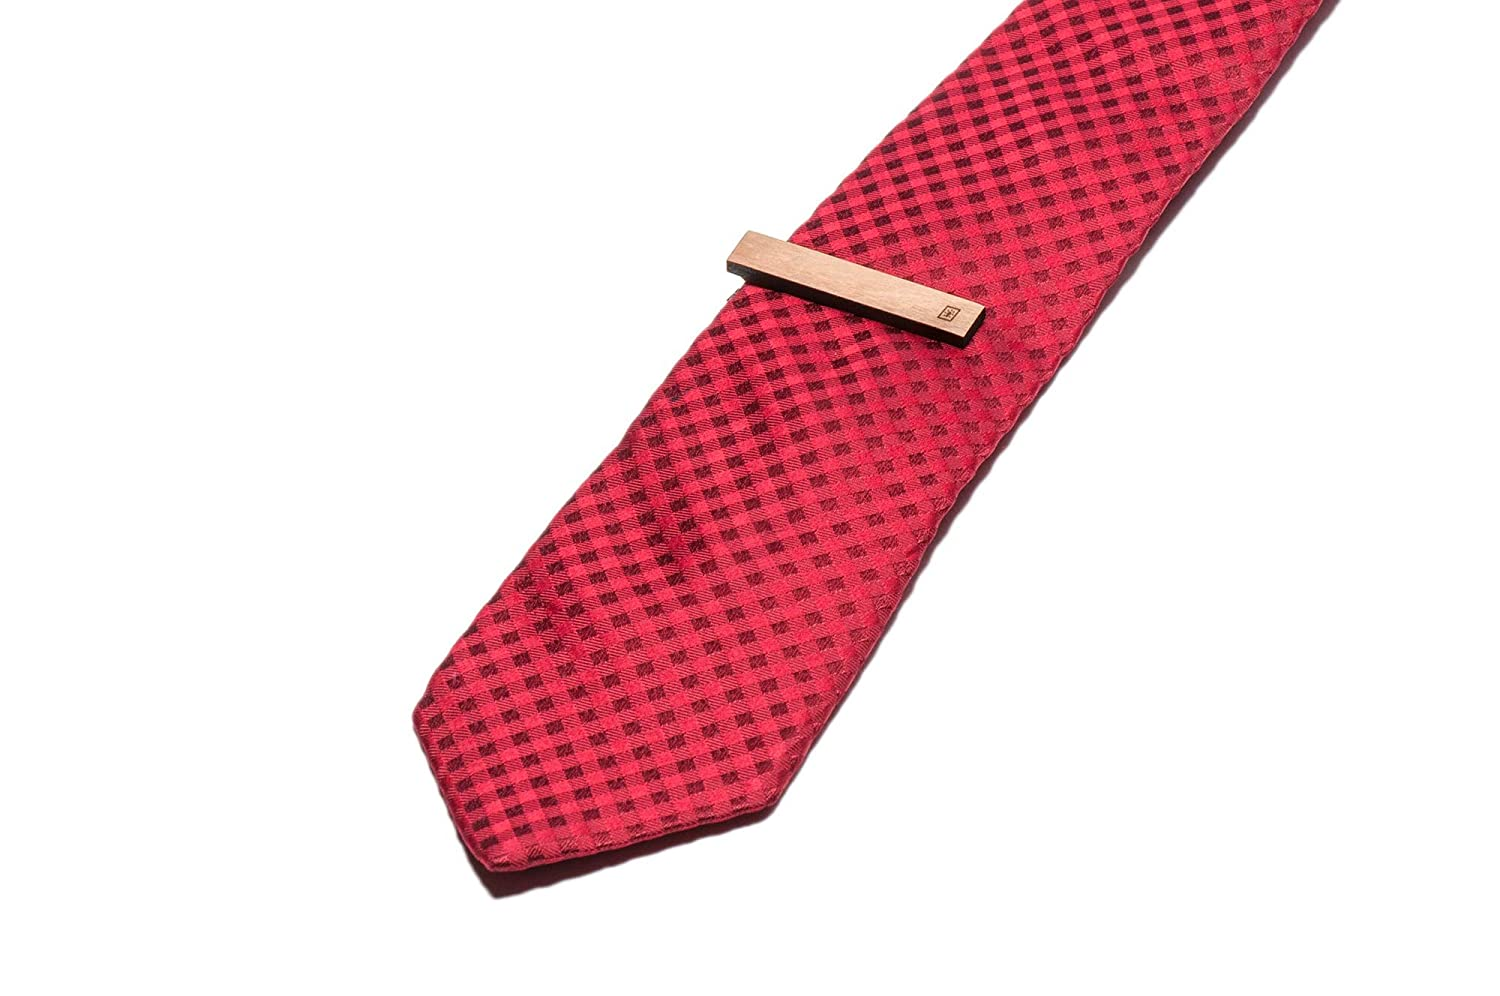 Wooden Accessories Company Wooden Tie Clips with Laser Engraved Oven Light Design Cherry Wood Tie Bar Engraved in The USA